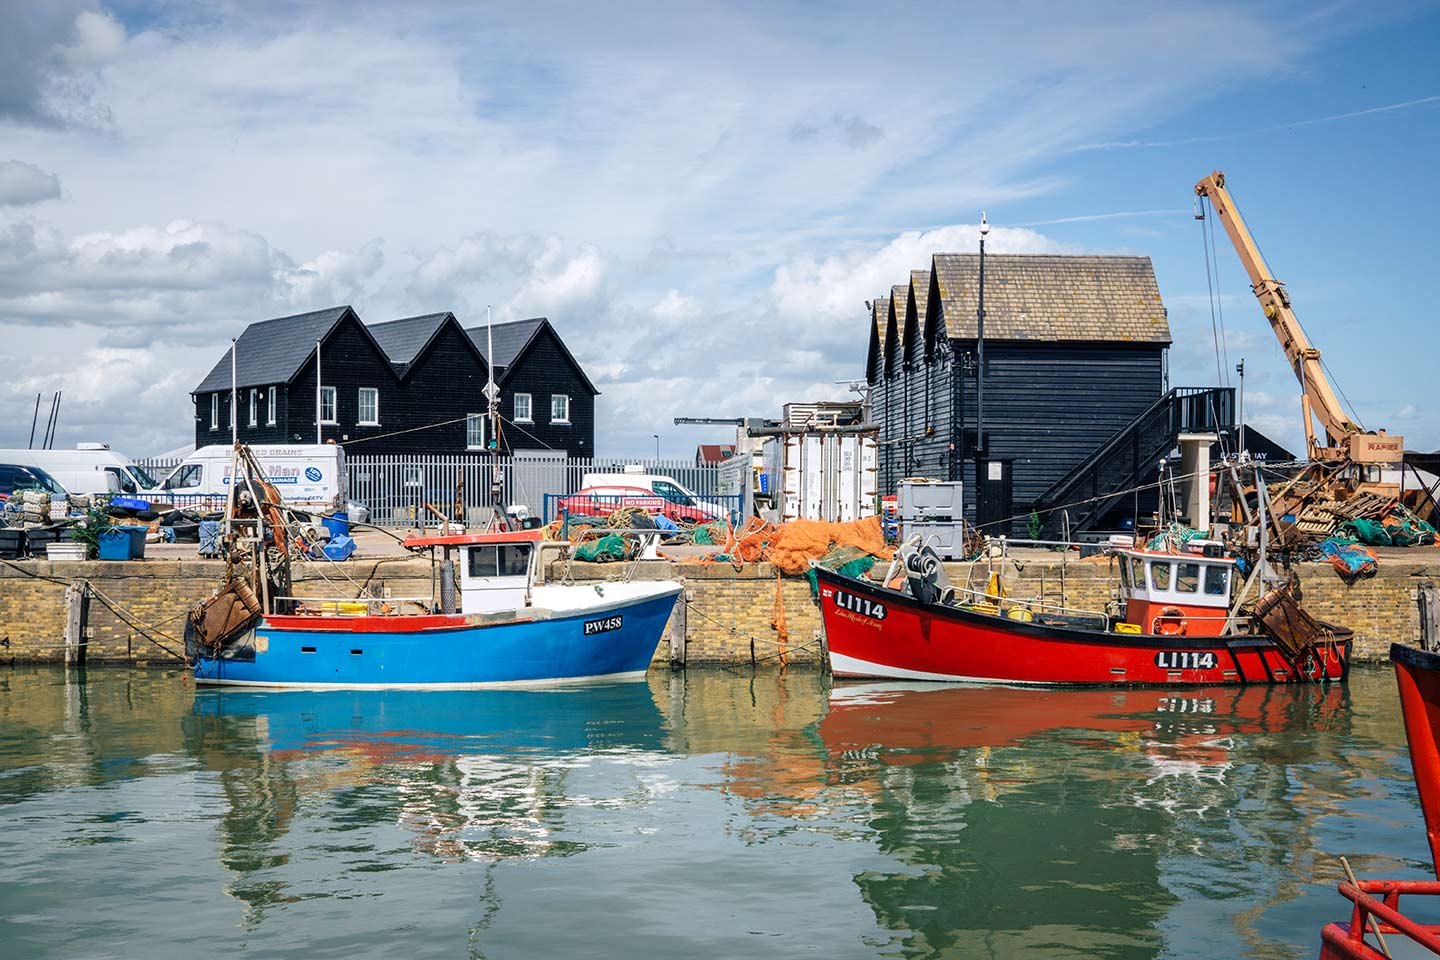 Things to do in Whitstable - a day trip from London blog post